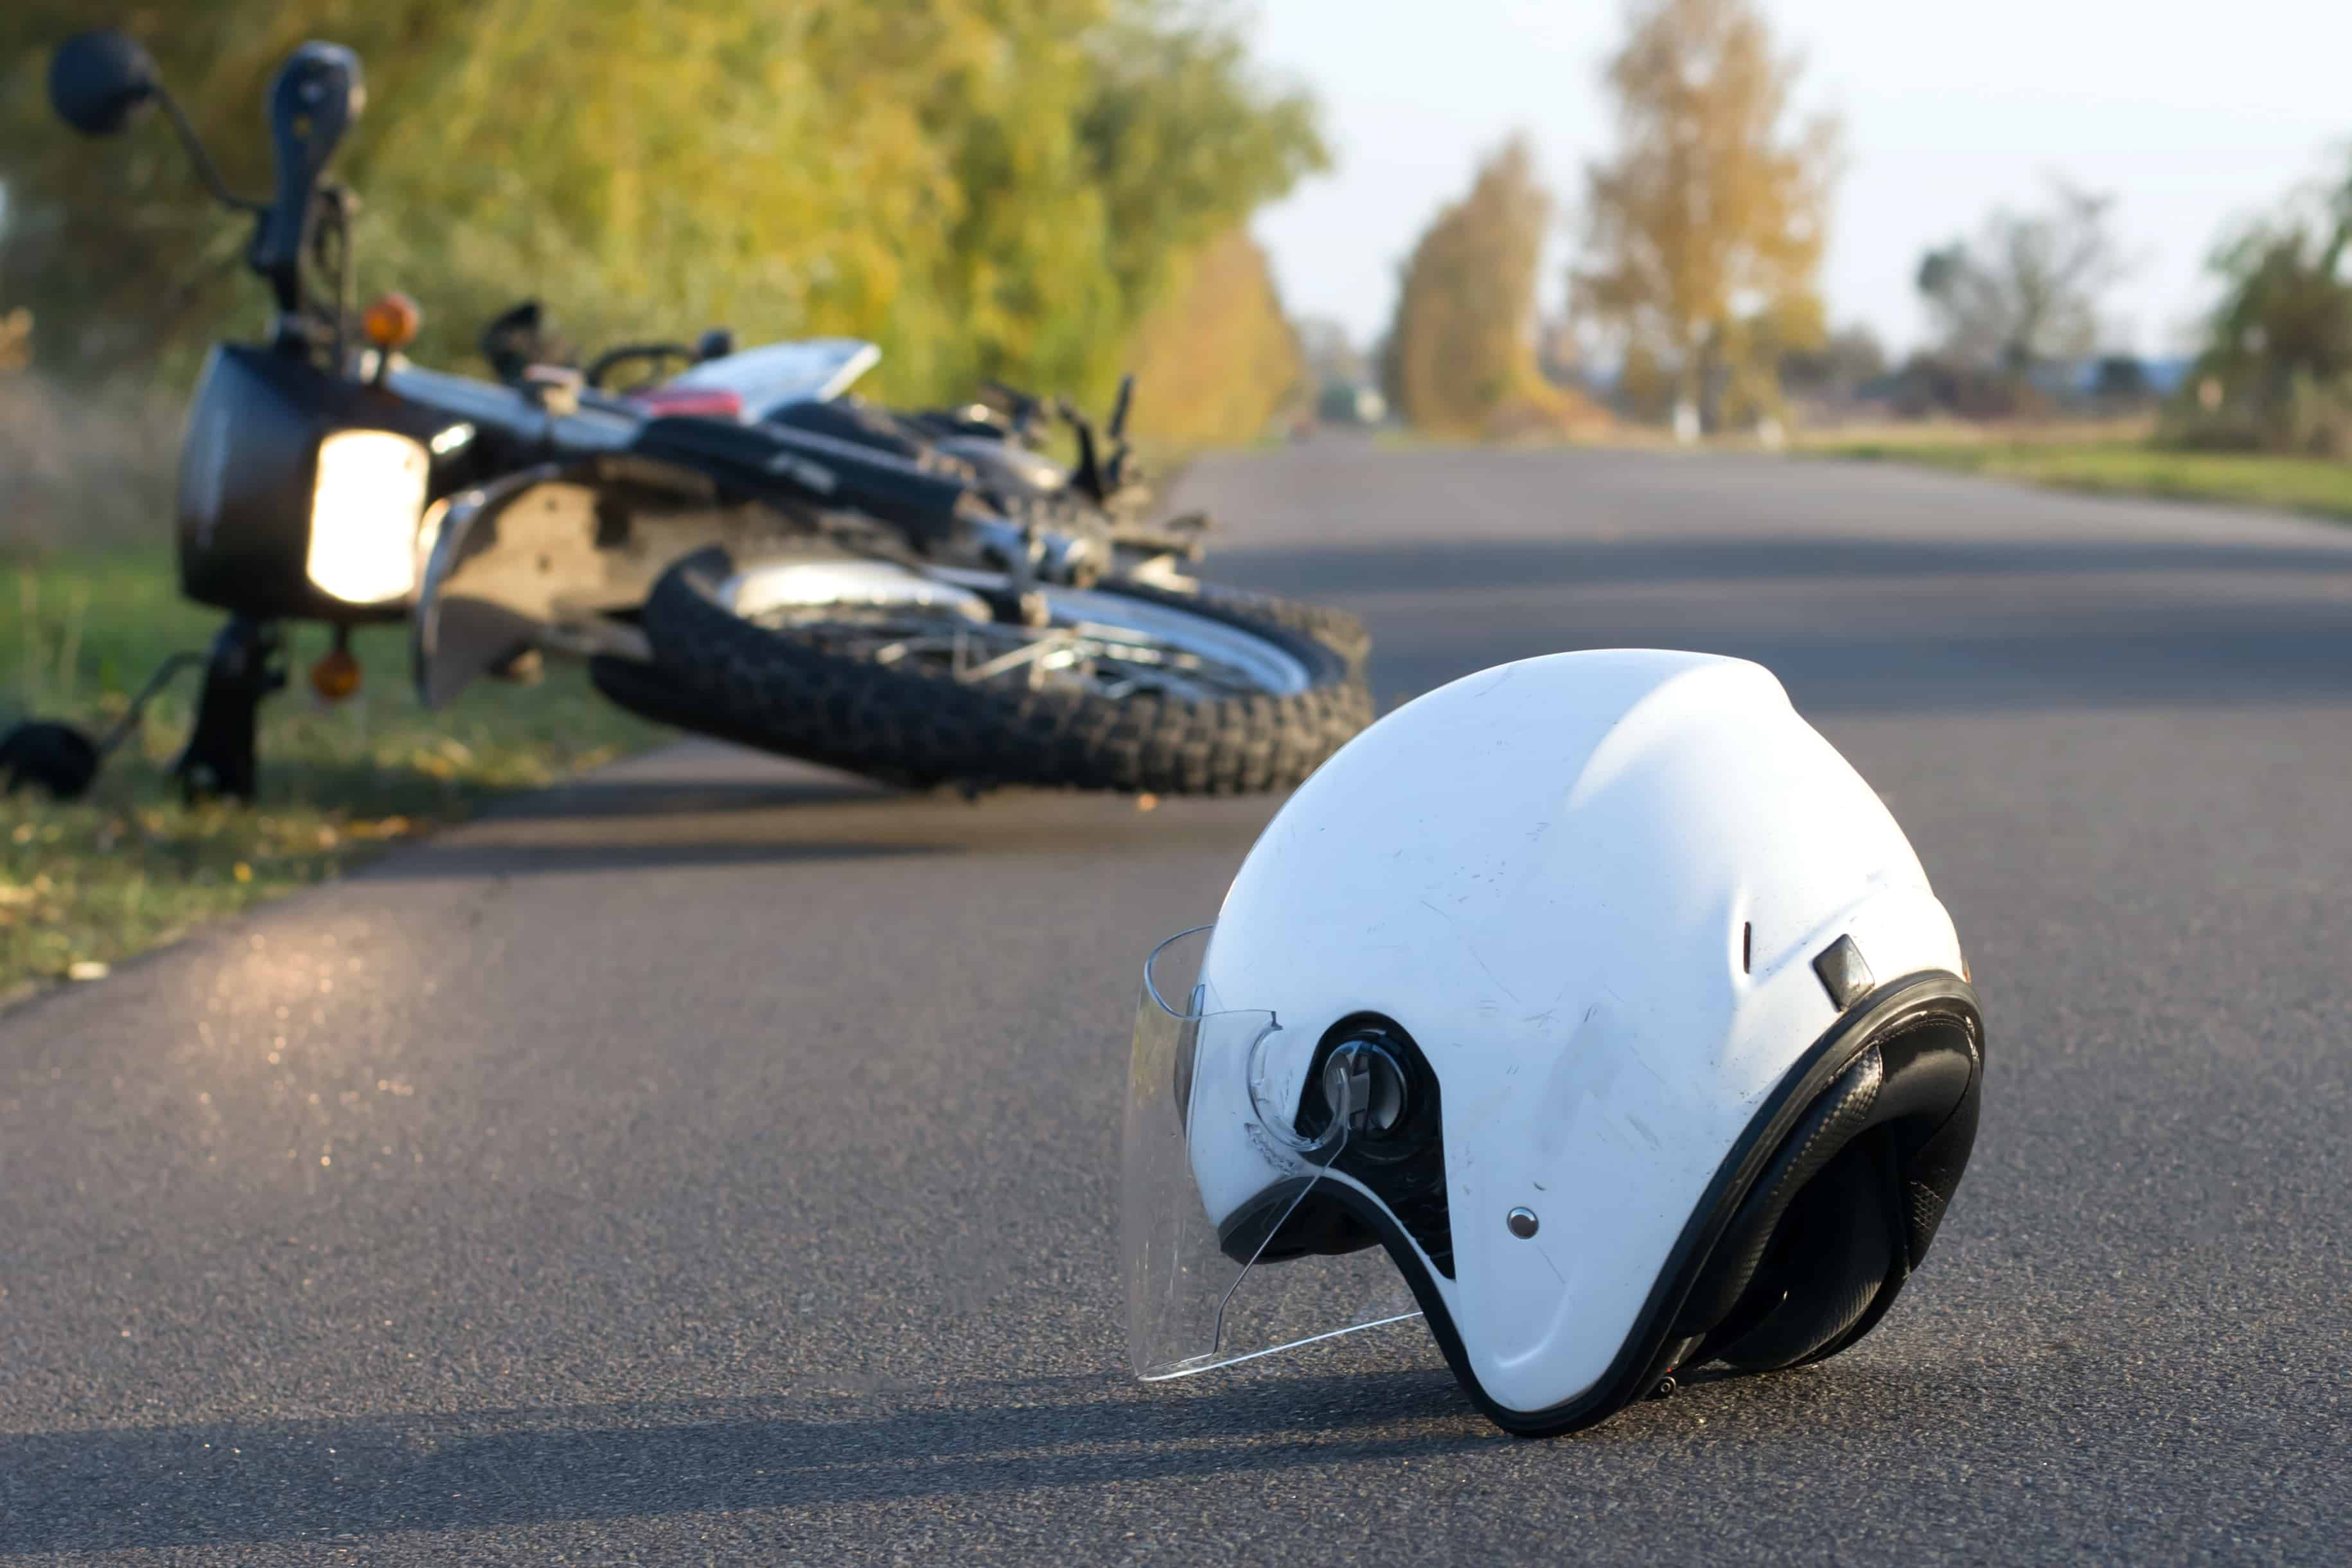 Motorcyclist Killed in Rollover Crash on Highway 371 [AGUANGA, CA]